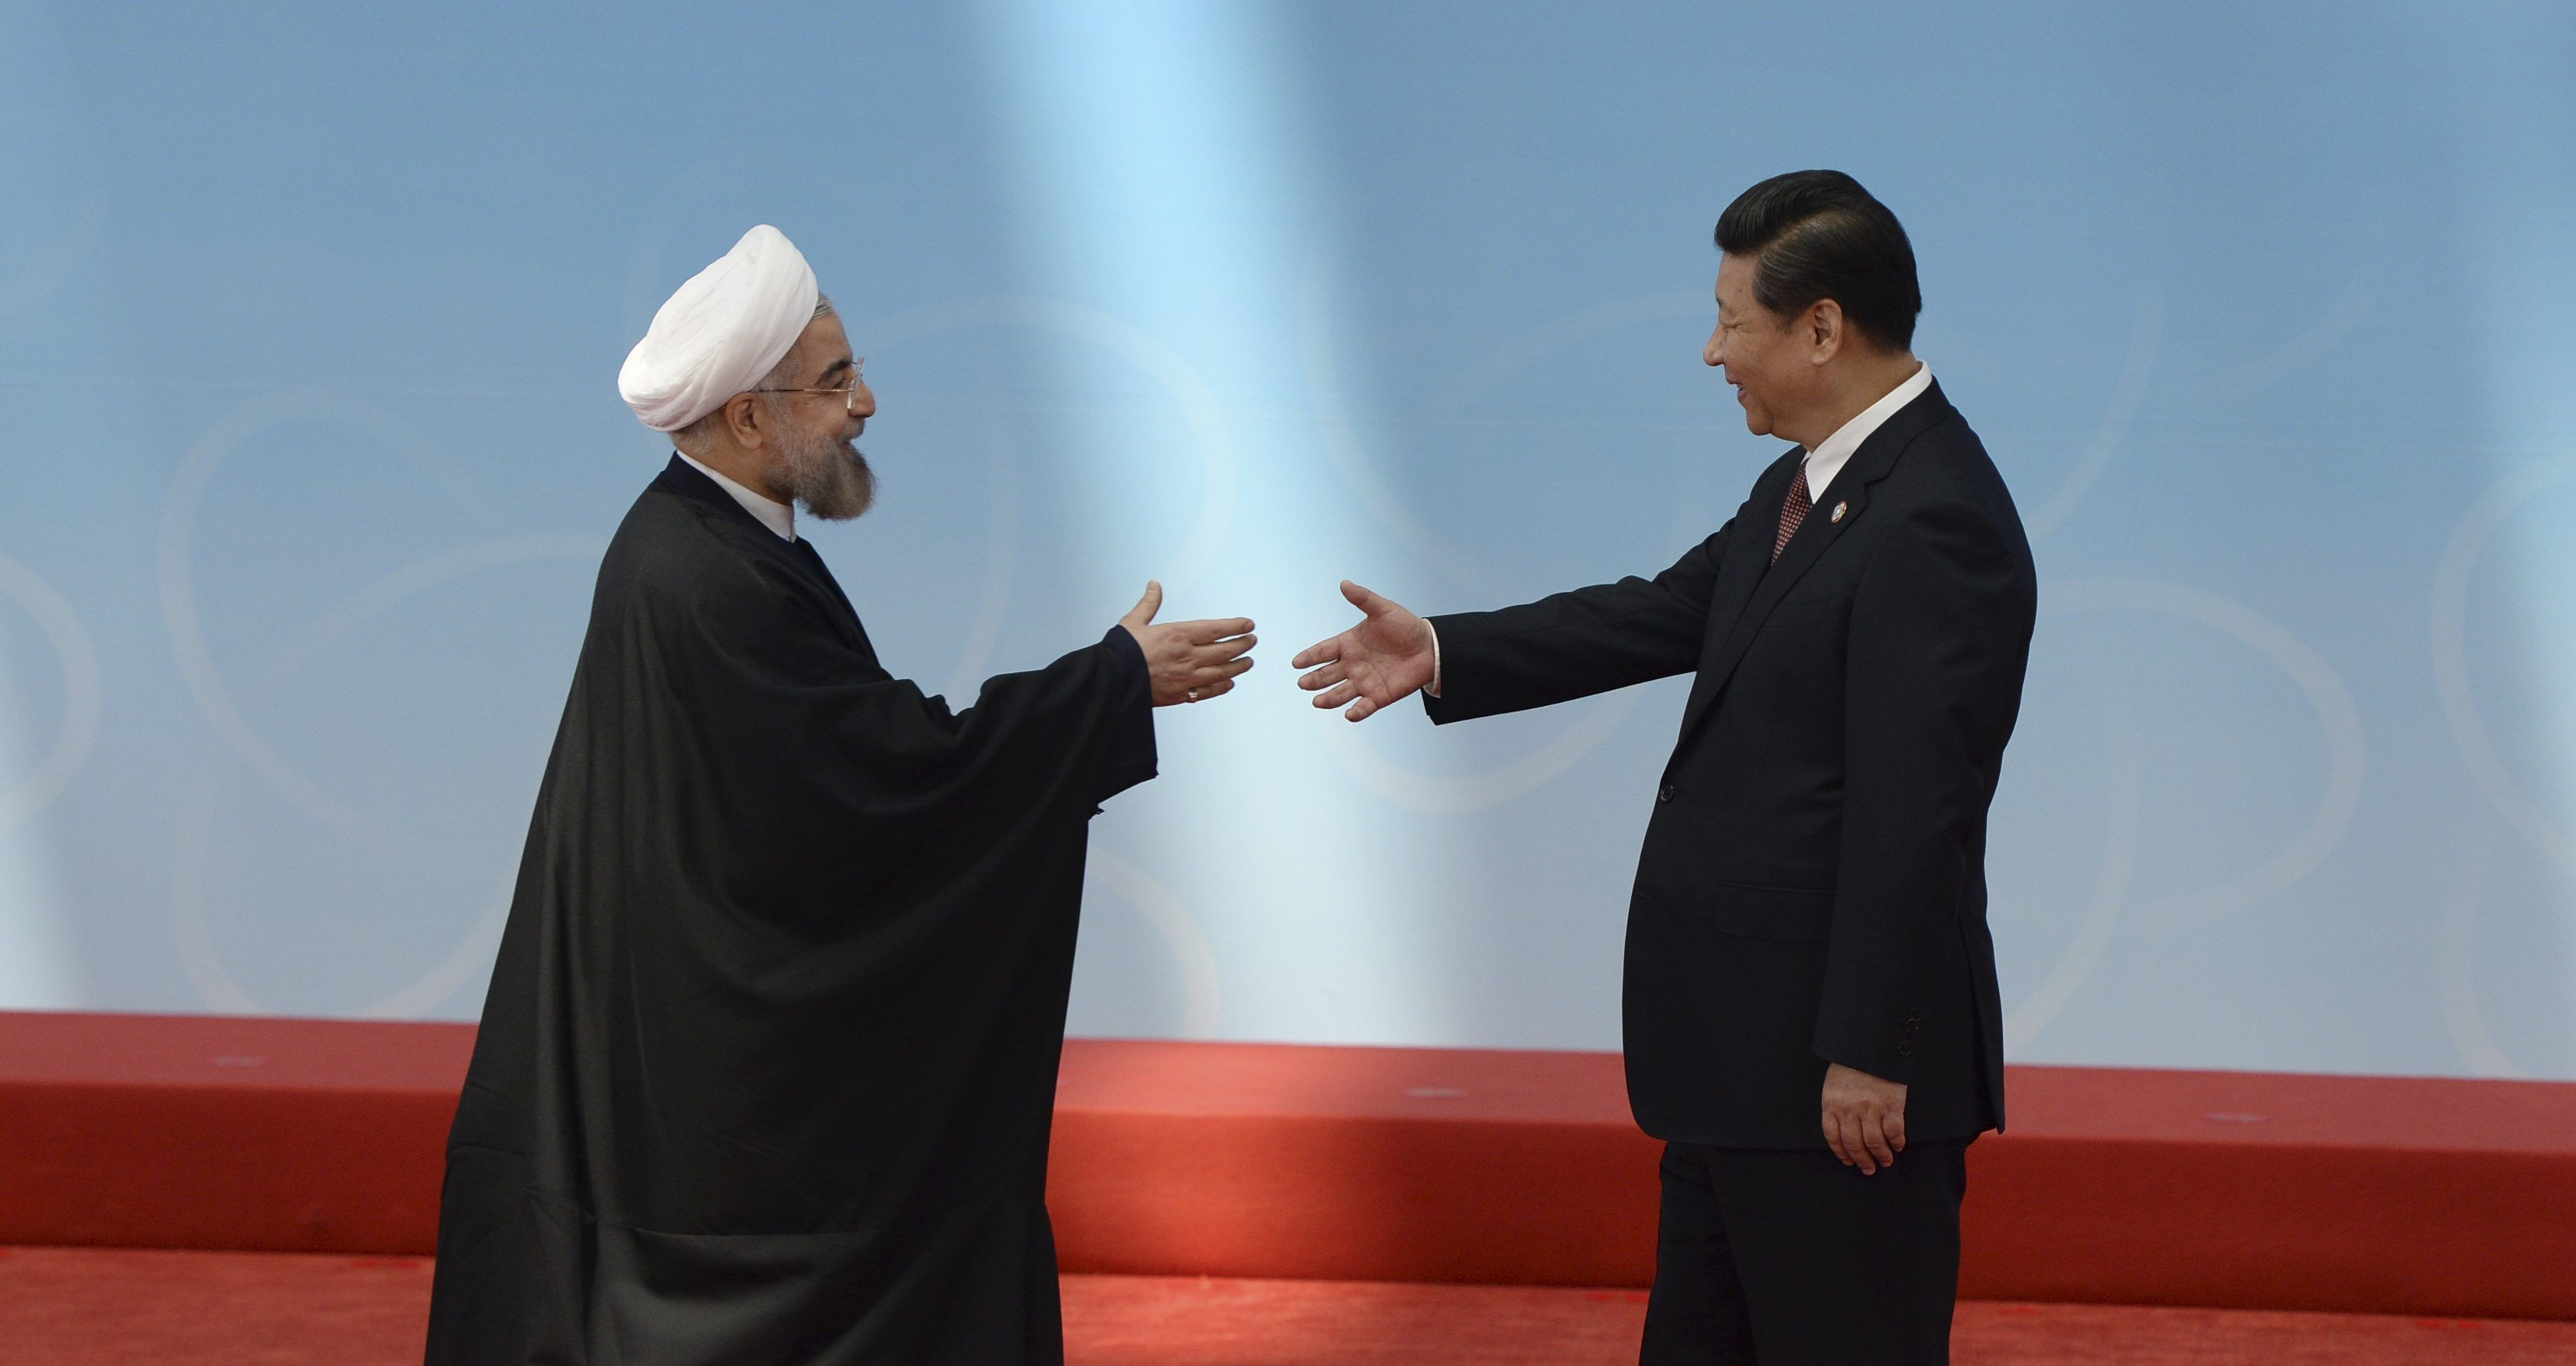 2014-05-21T120000Z_810407227_GM1EA5L10GC01_RTRMADP_3_CHINA-IRAN-e1550745900311